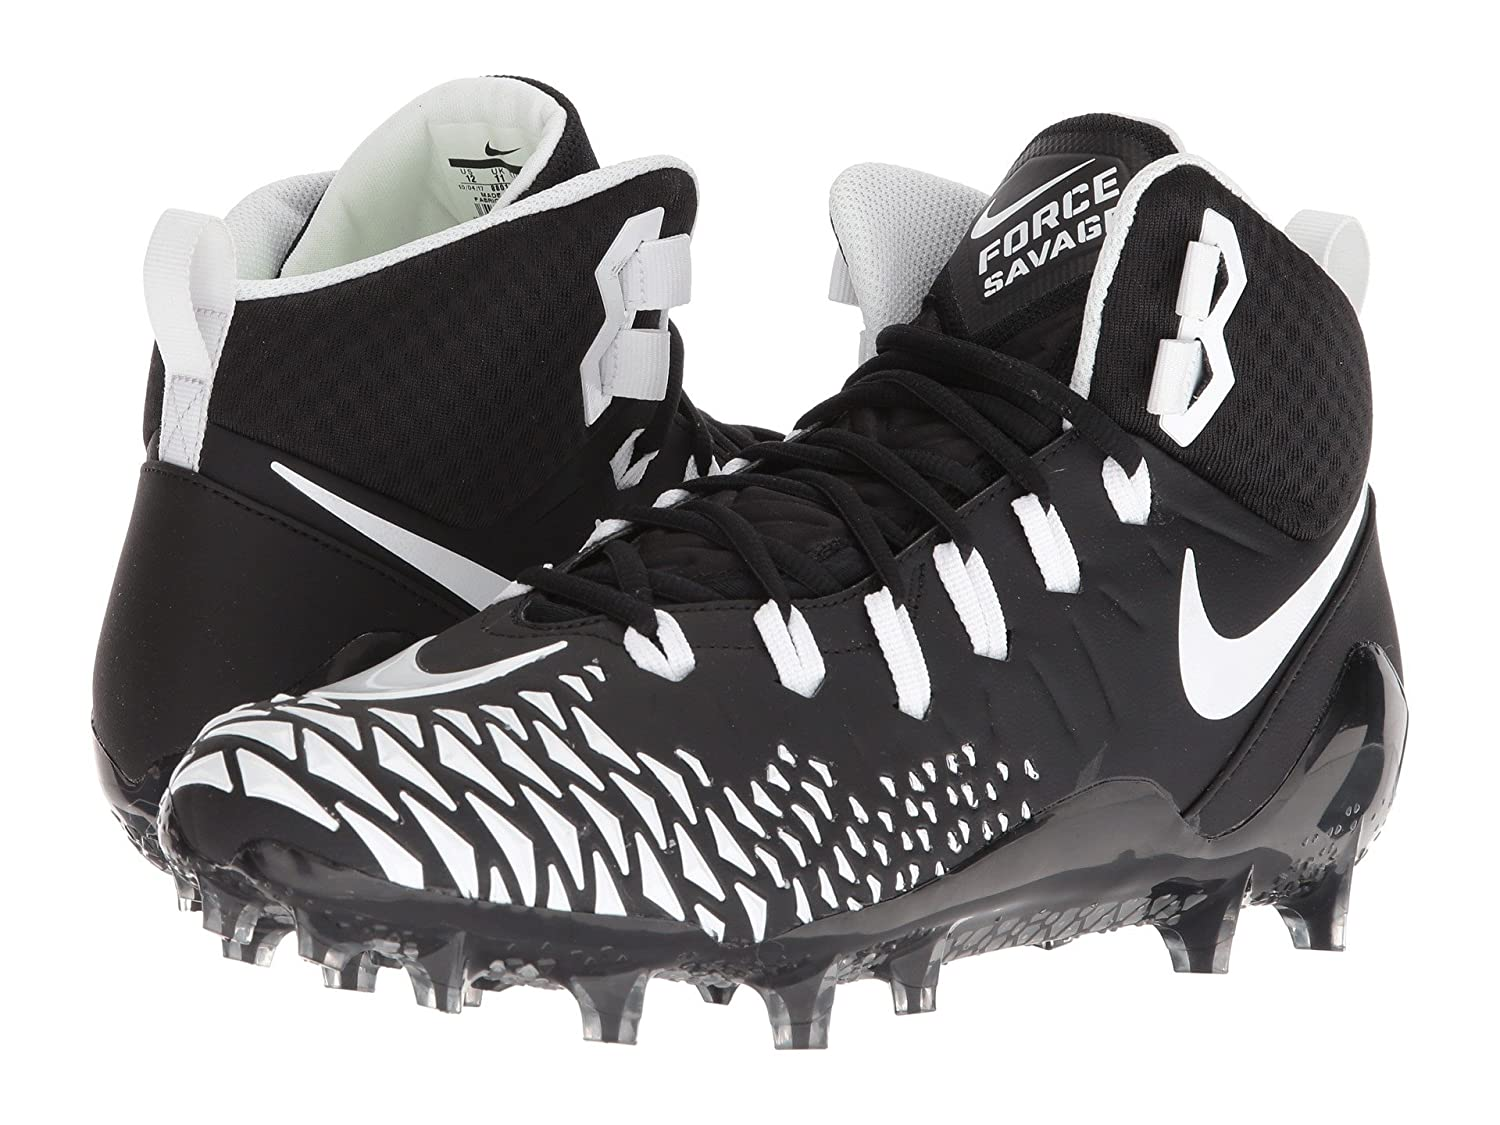 (ナイキ) NIKE メンズフットボールアメフトシューズ靴 Force Savage Pro Black/White/Black/Black 15 (33.cm) D Medium B07CP4JQ22